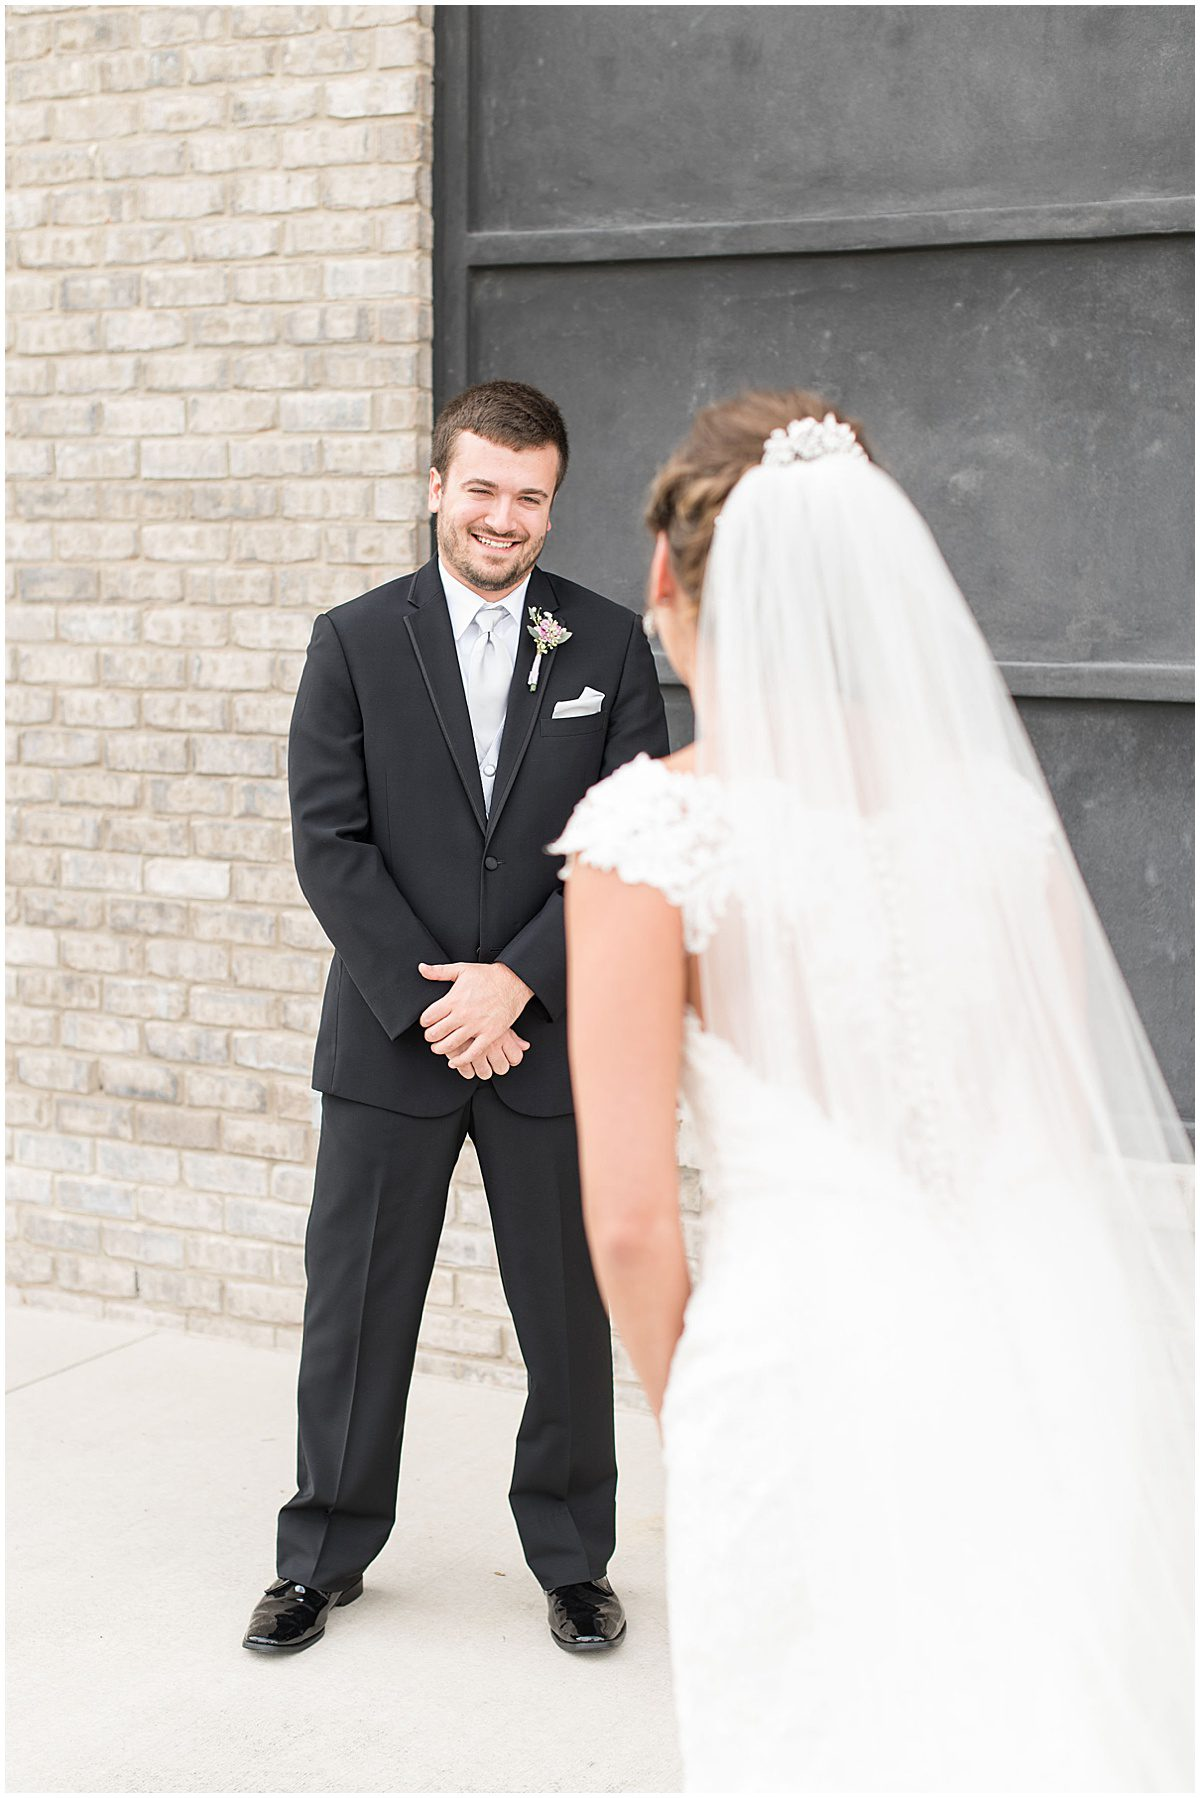 First look before Bel Air Events wedding in Kokomo, Indiana by Victoria Rayburn Photography